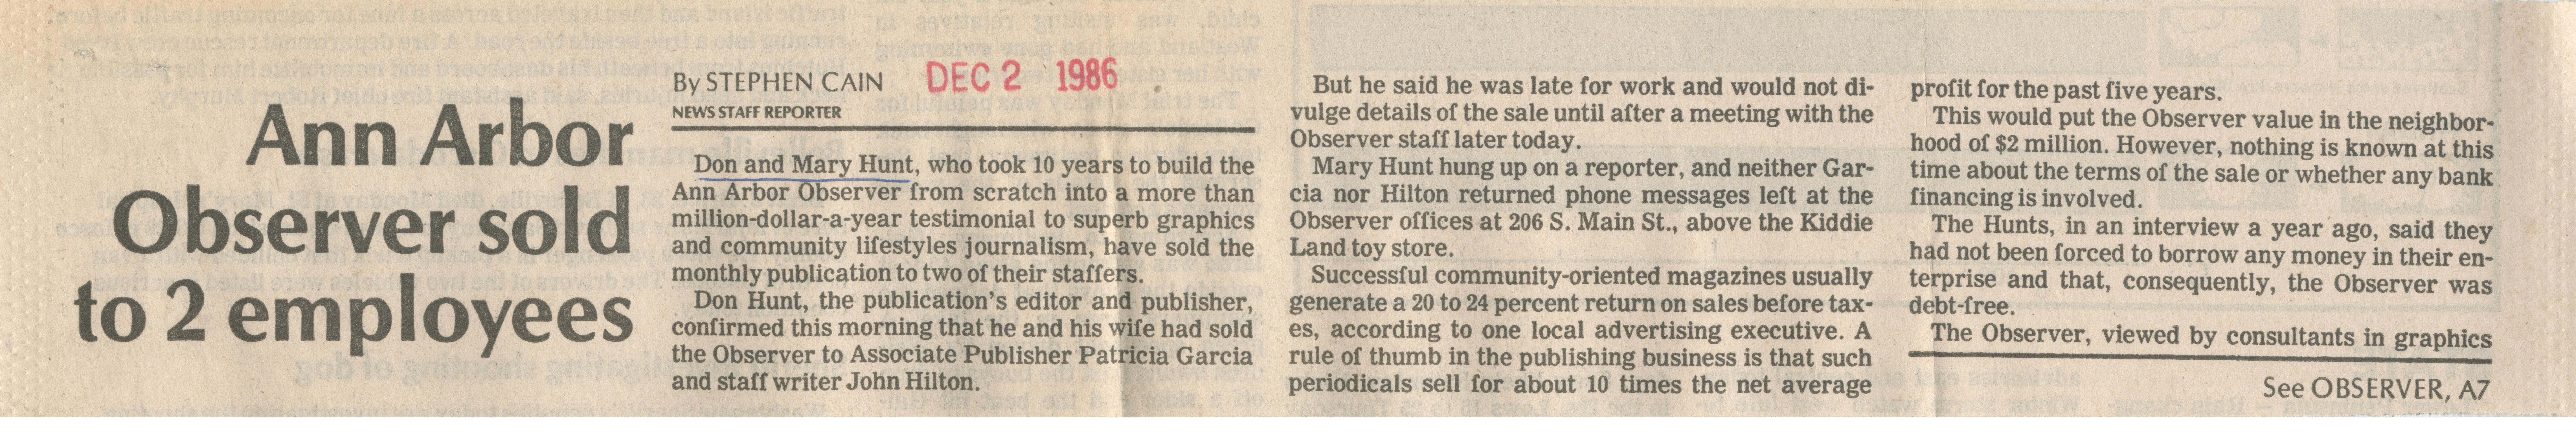 Ann Arbor Observer sold to 2 employees image